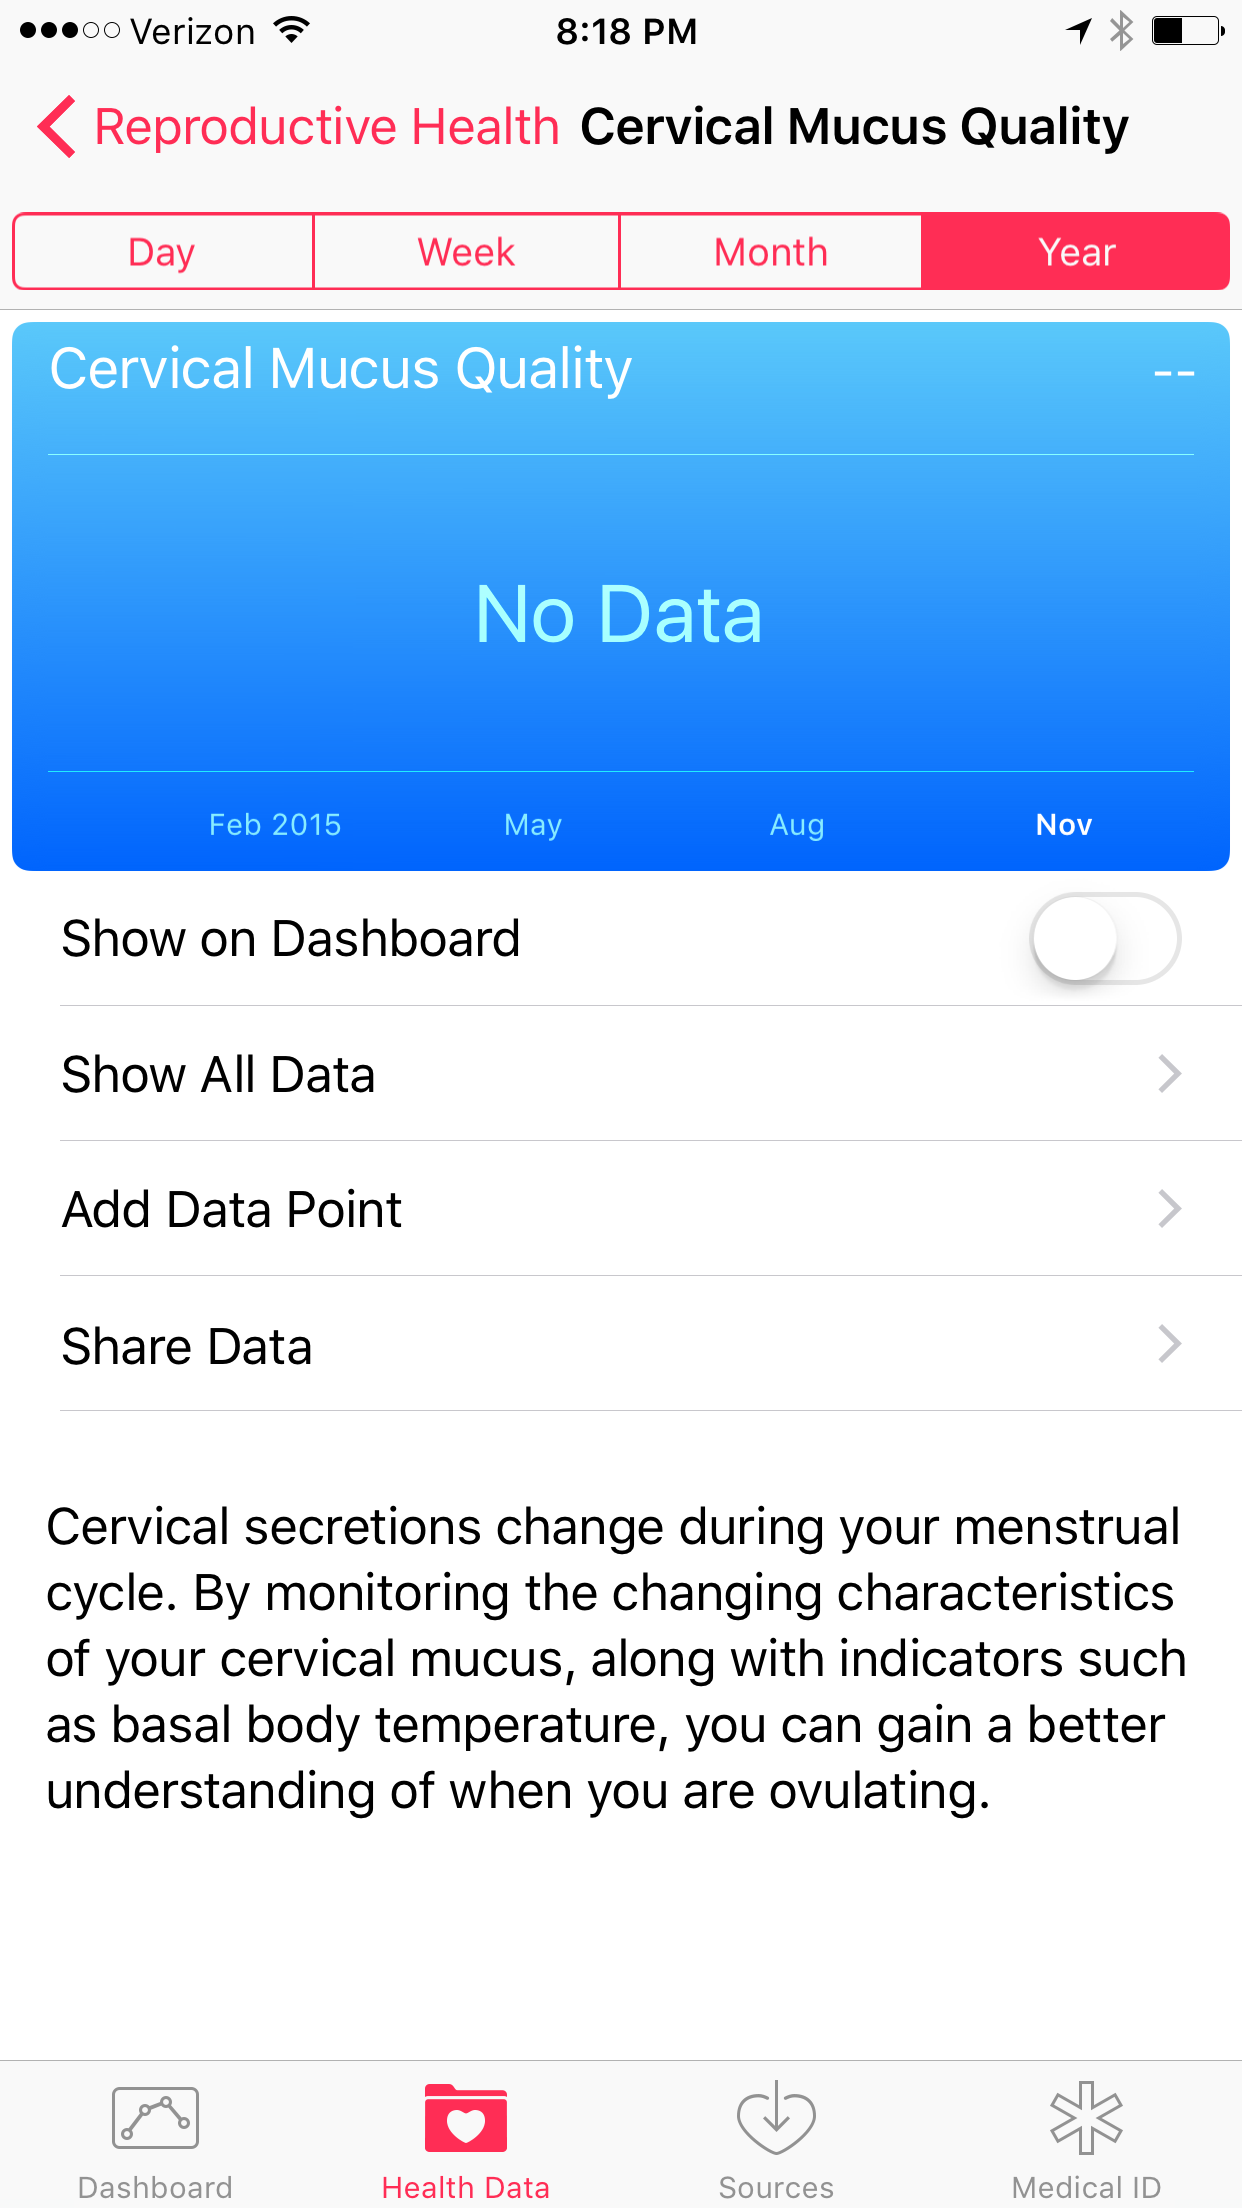 Tim Cook's Apple Computer: Helping me track my cervical mucus